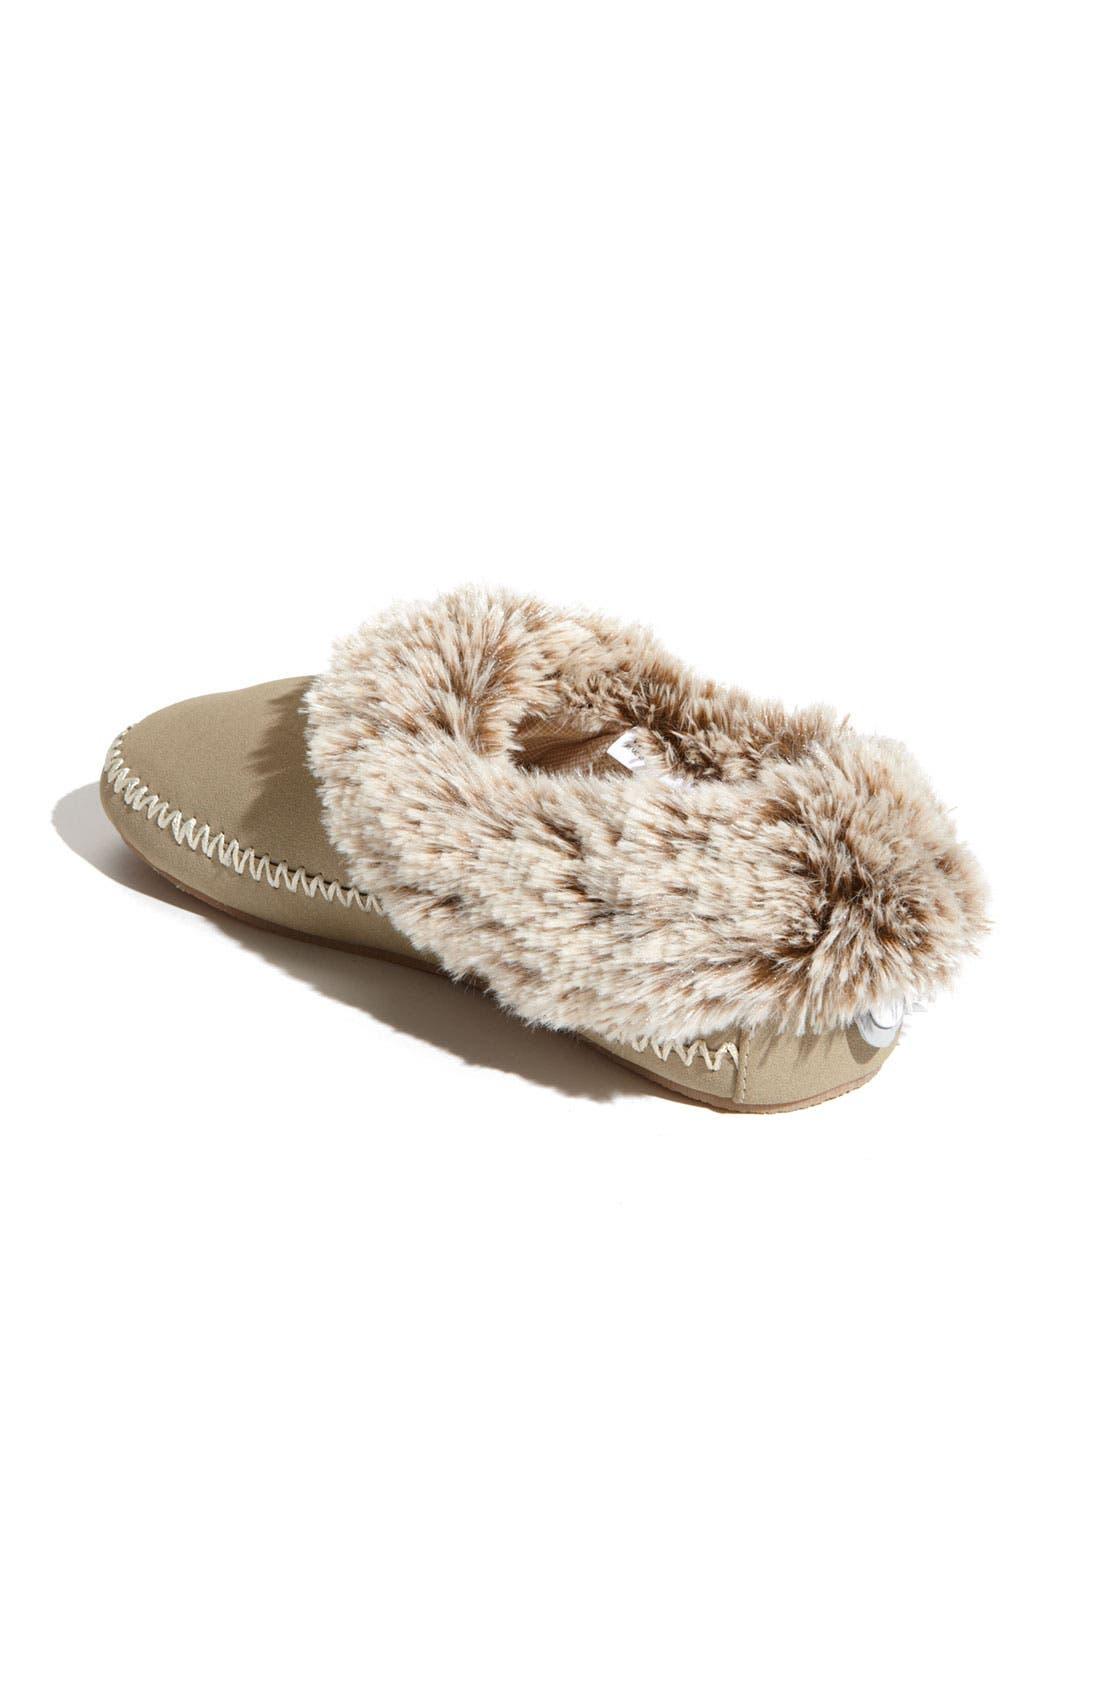 Alternate Image 2  - Freewaters 'Cloudnine' Slipper